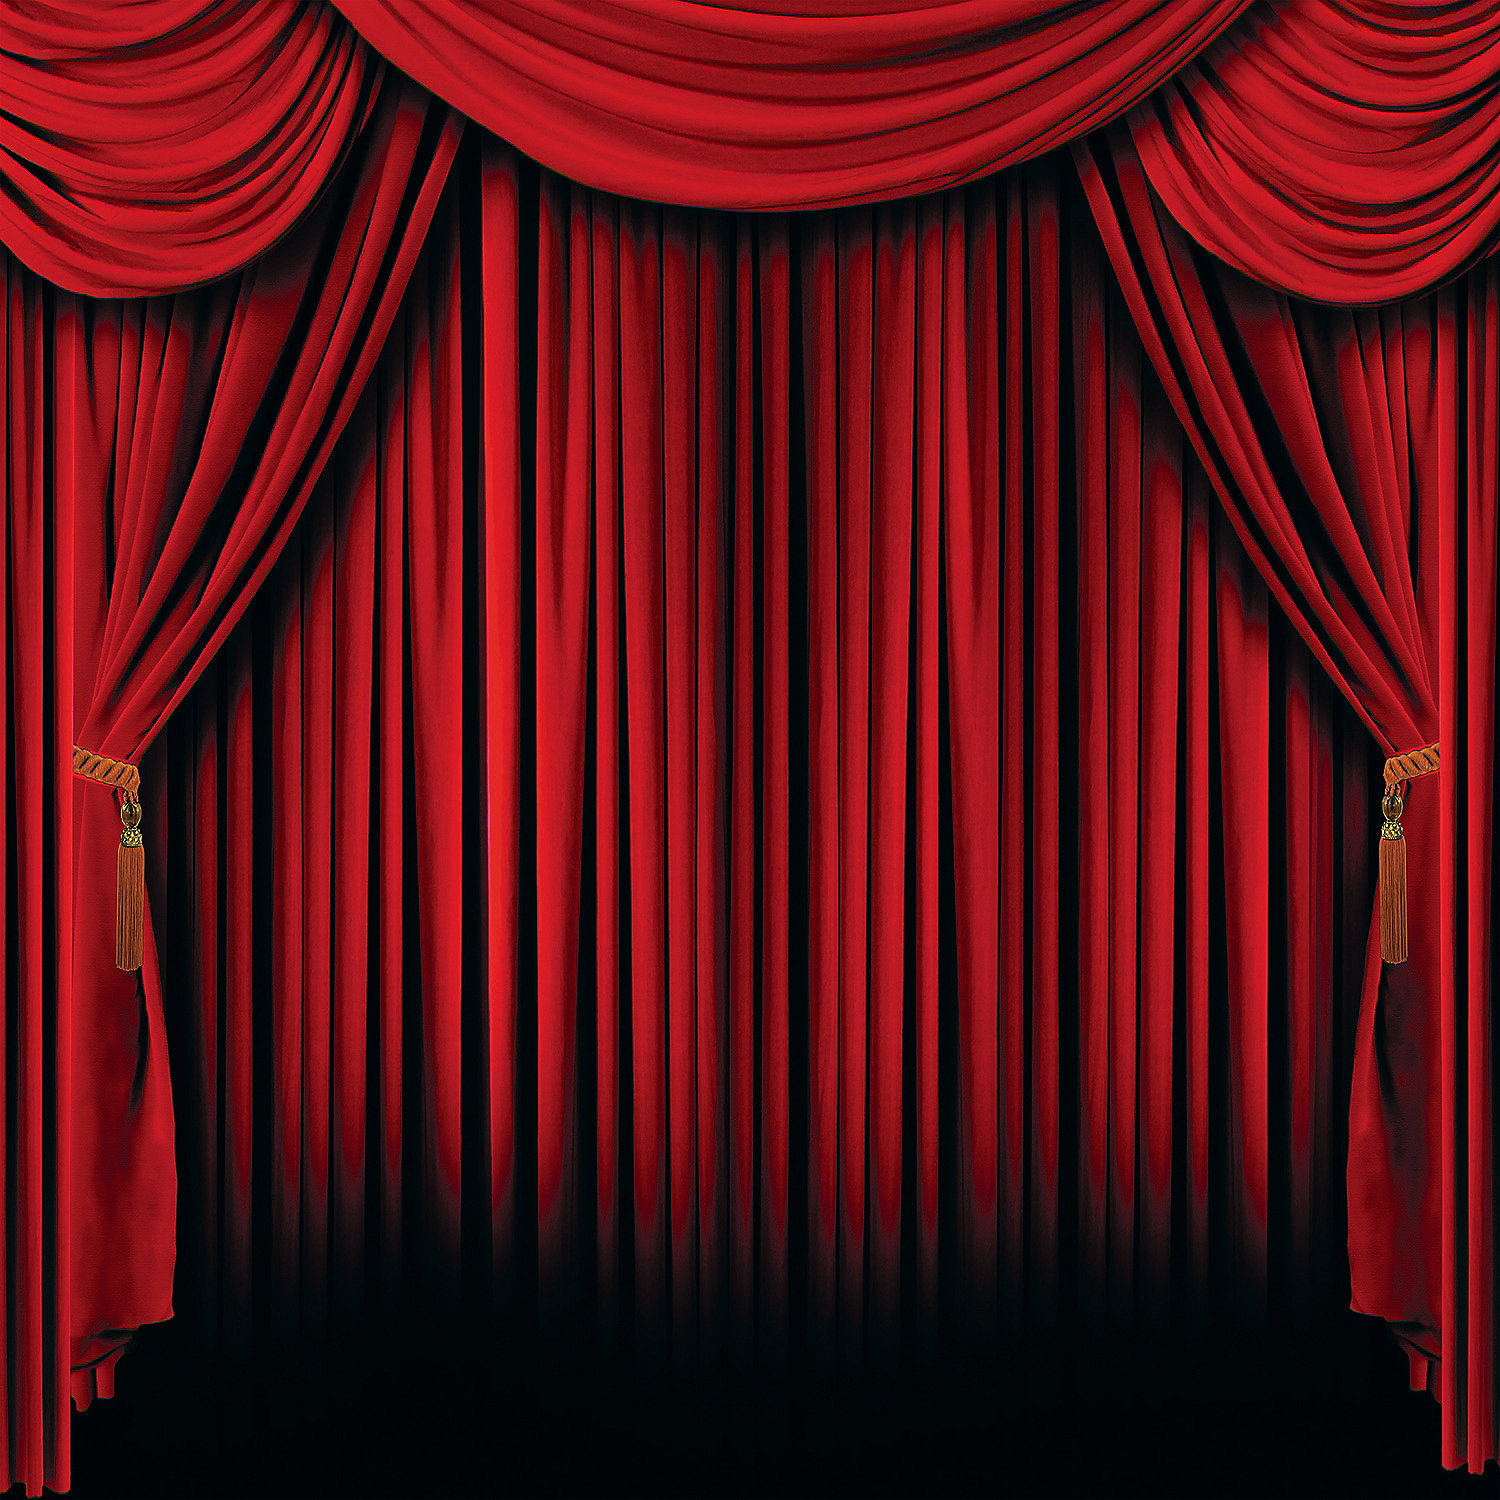 Red Curtain 6 Ft by 6 Ft Backdrop Party Supplies Canada Open A